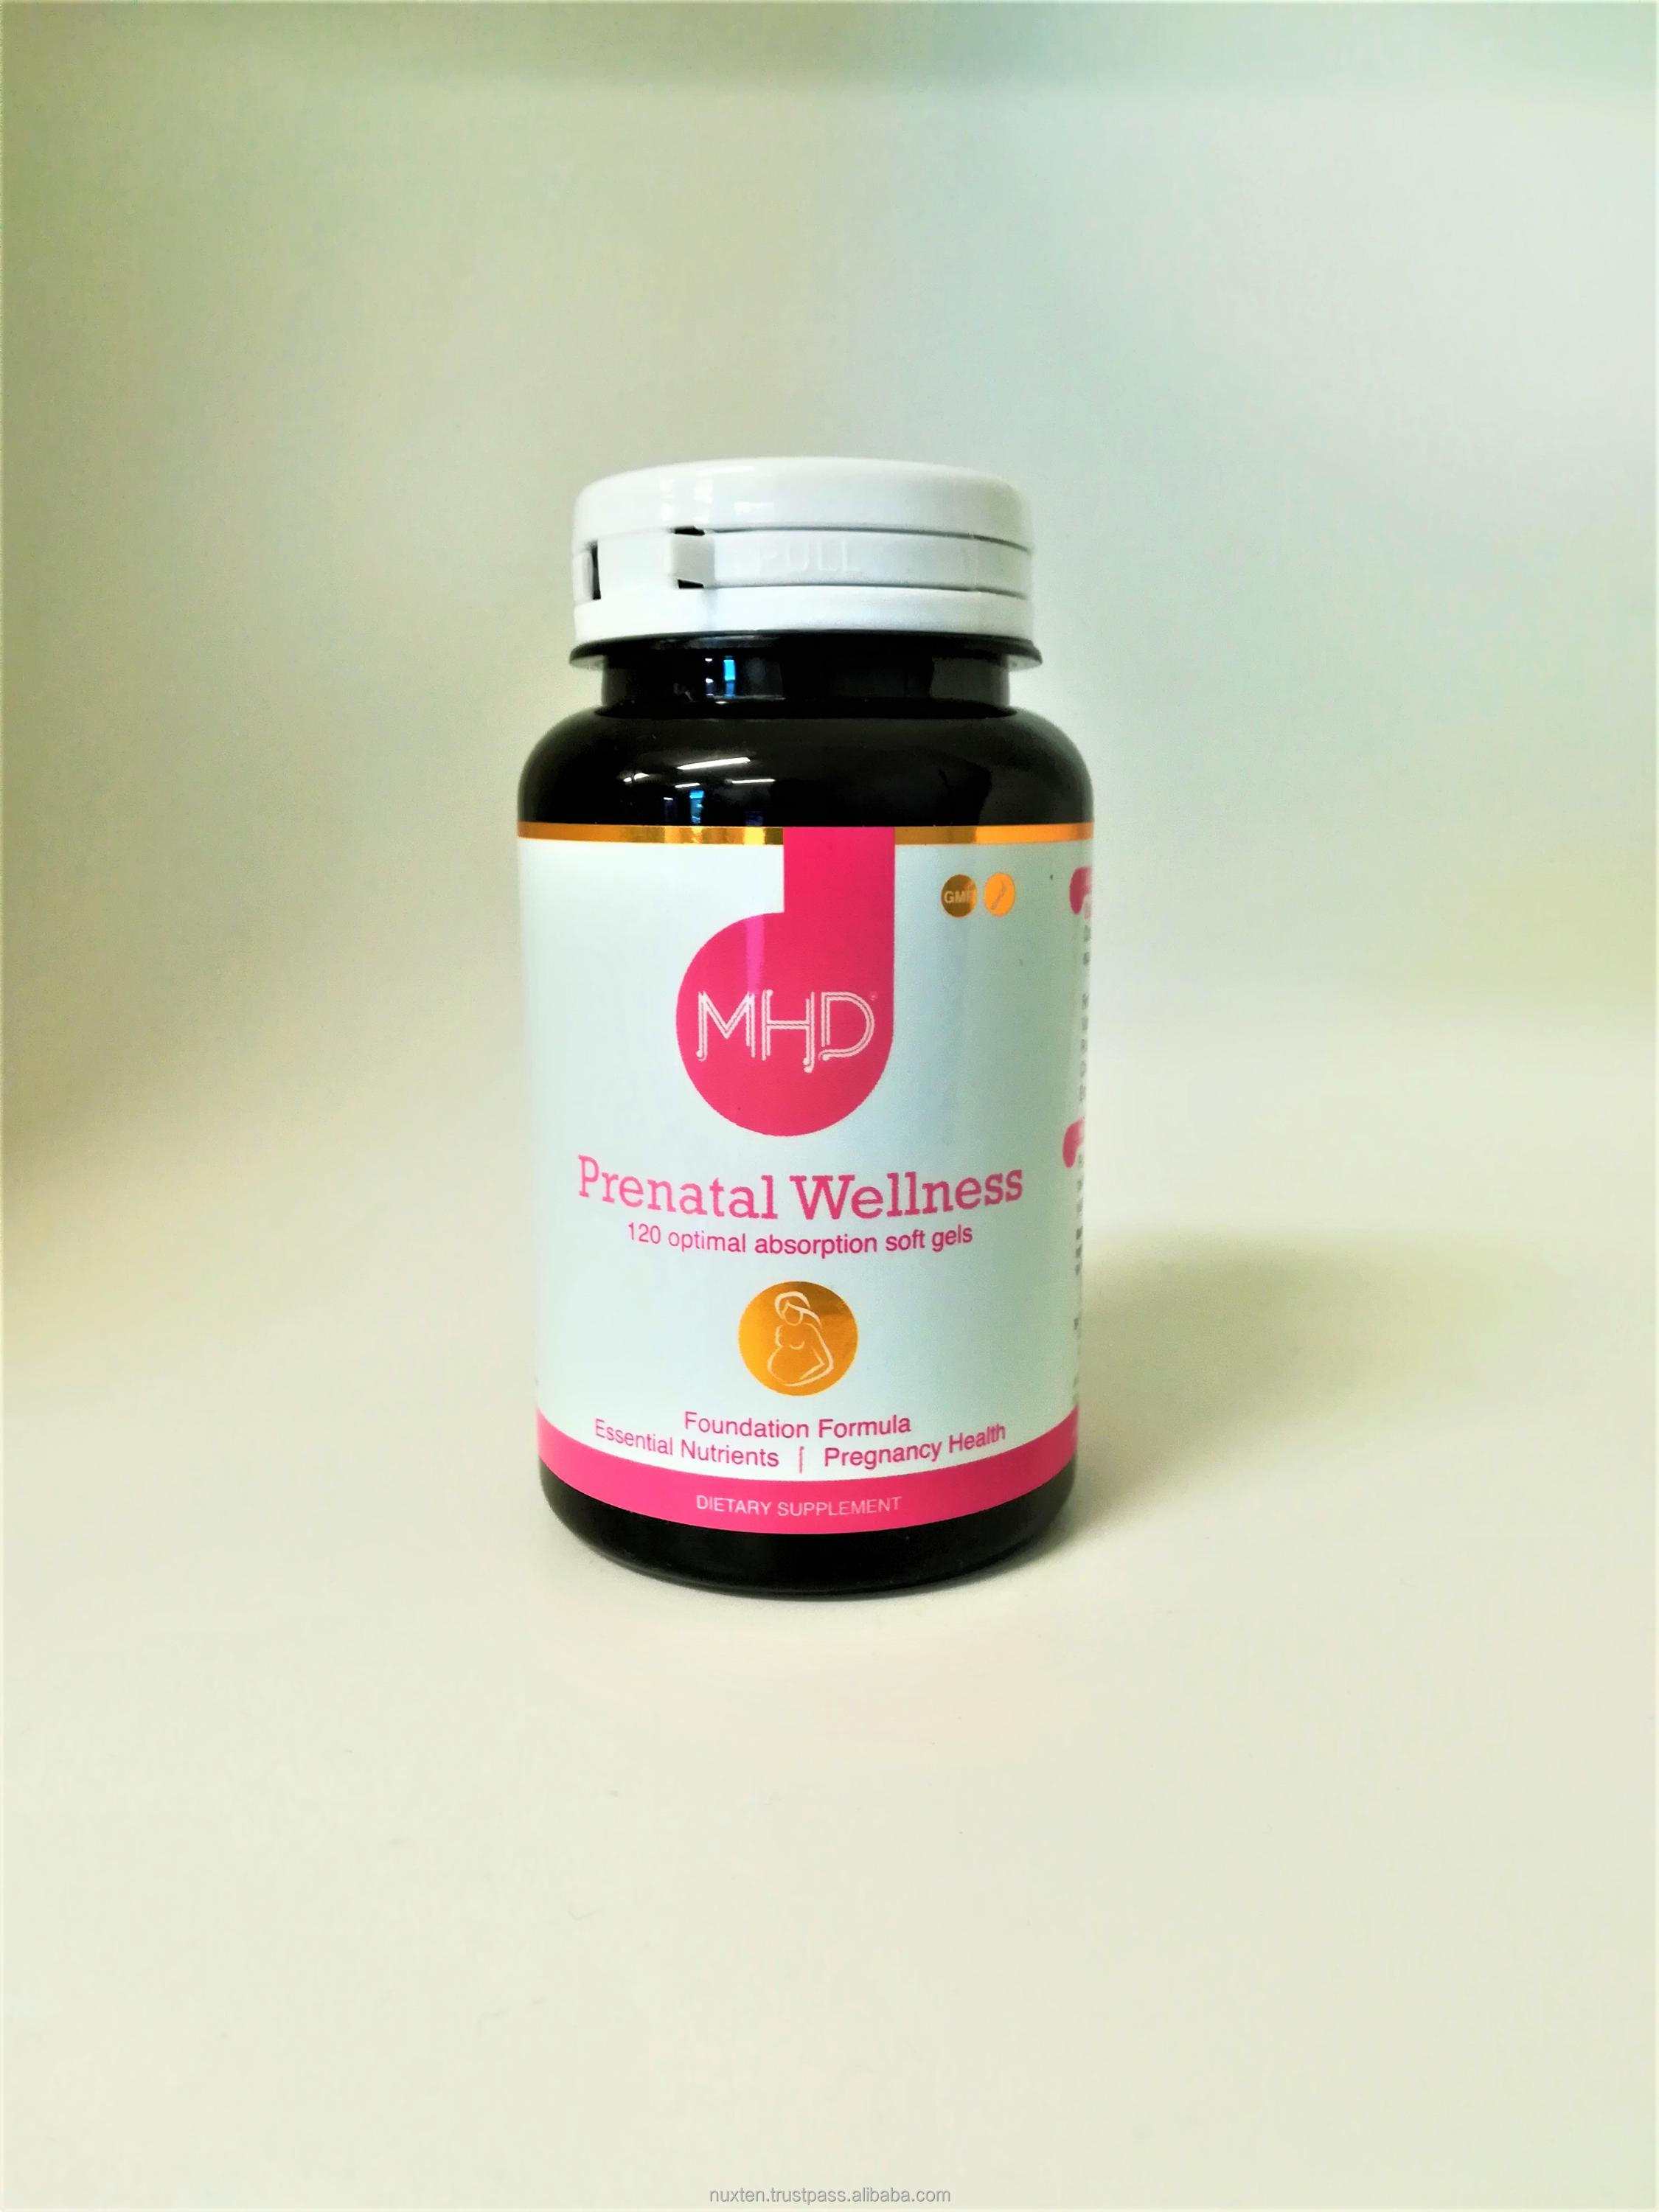 MHD: Prenatal Wellness - Pregnancy Support Supplements 120 Soft Gels Capsules